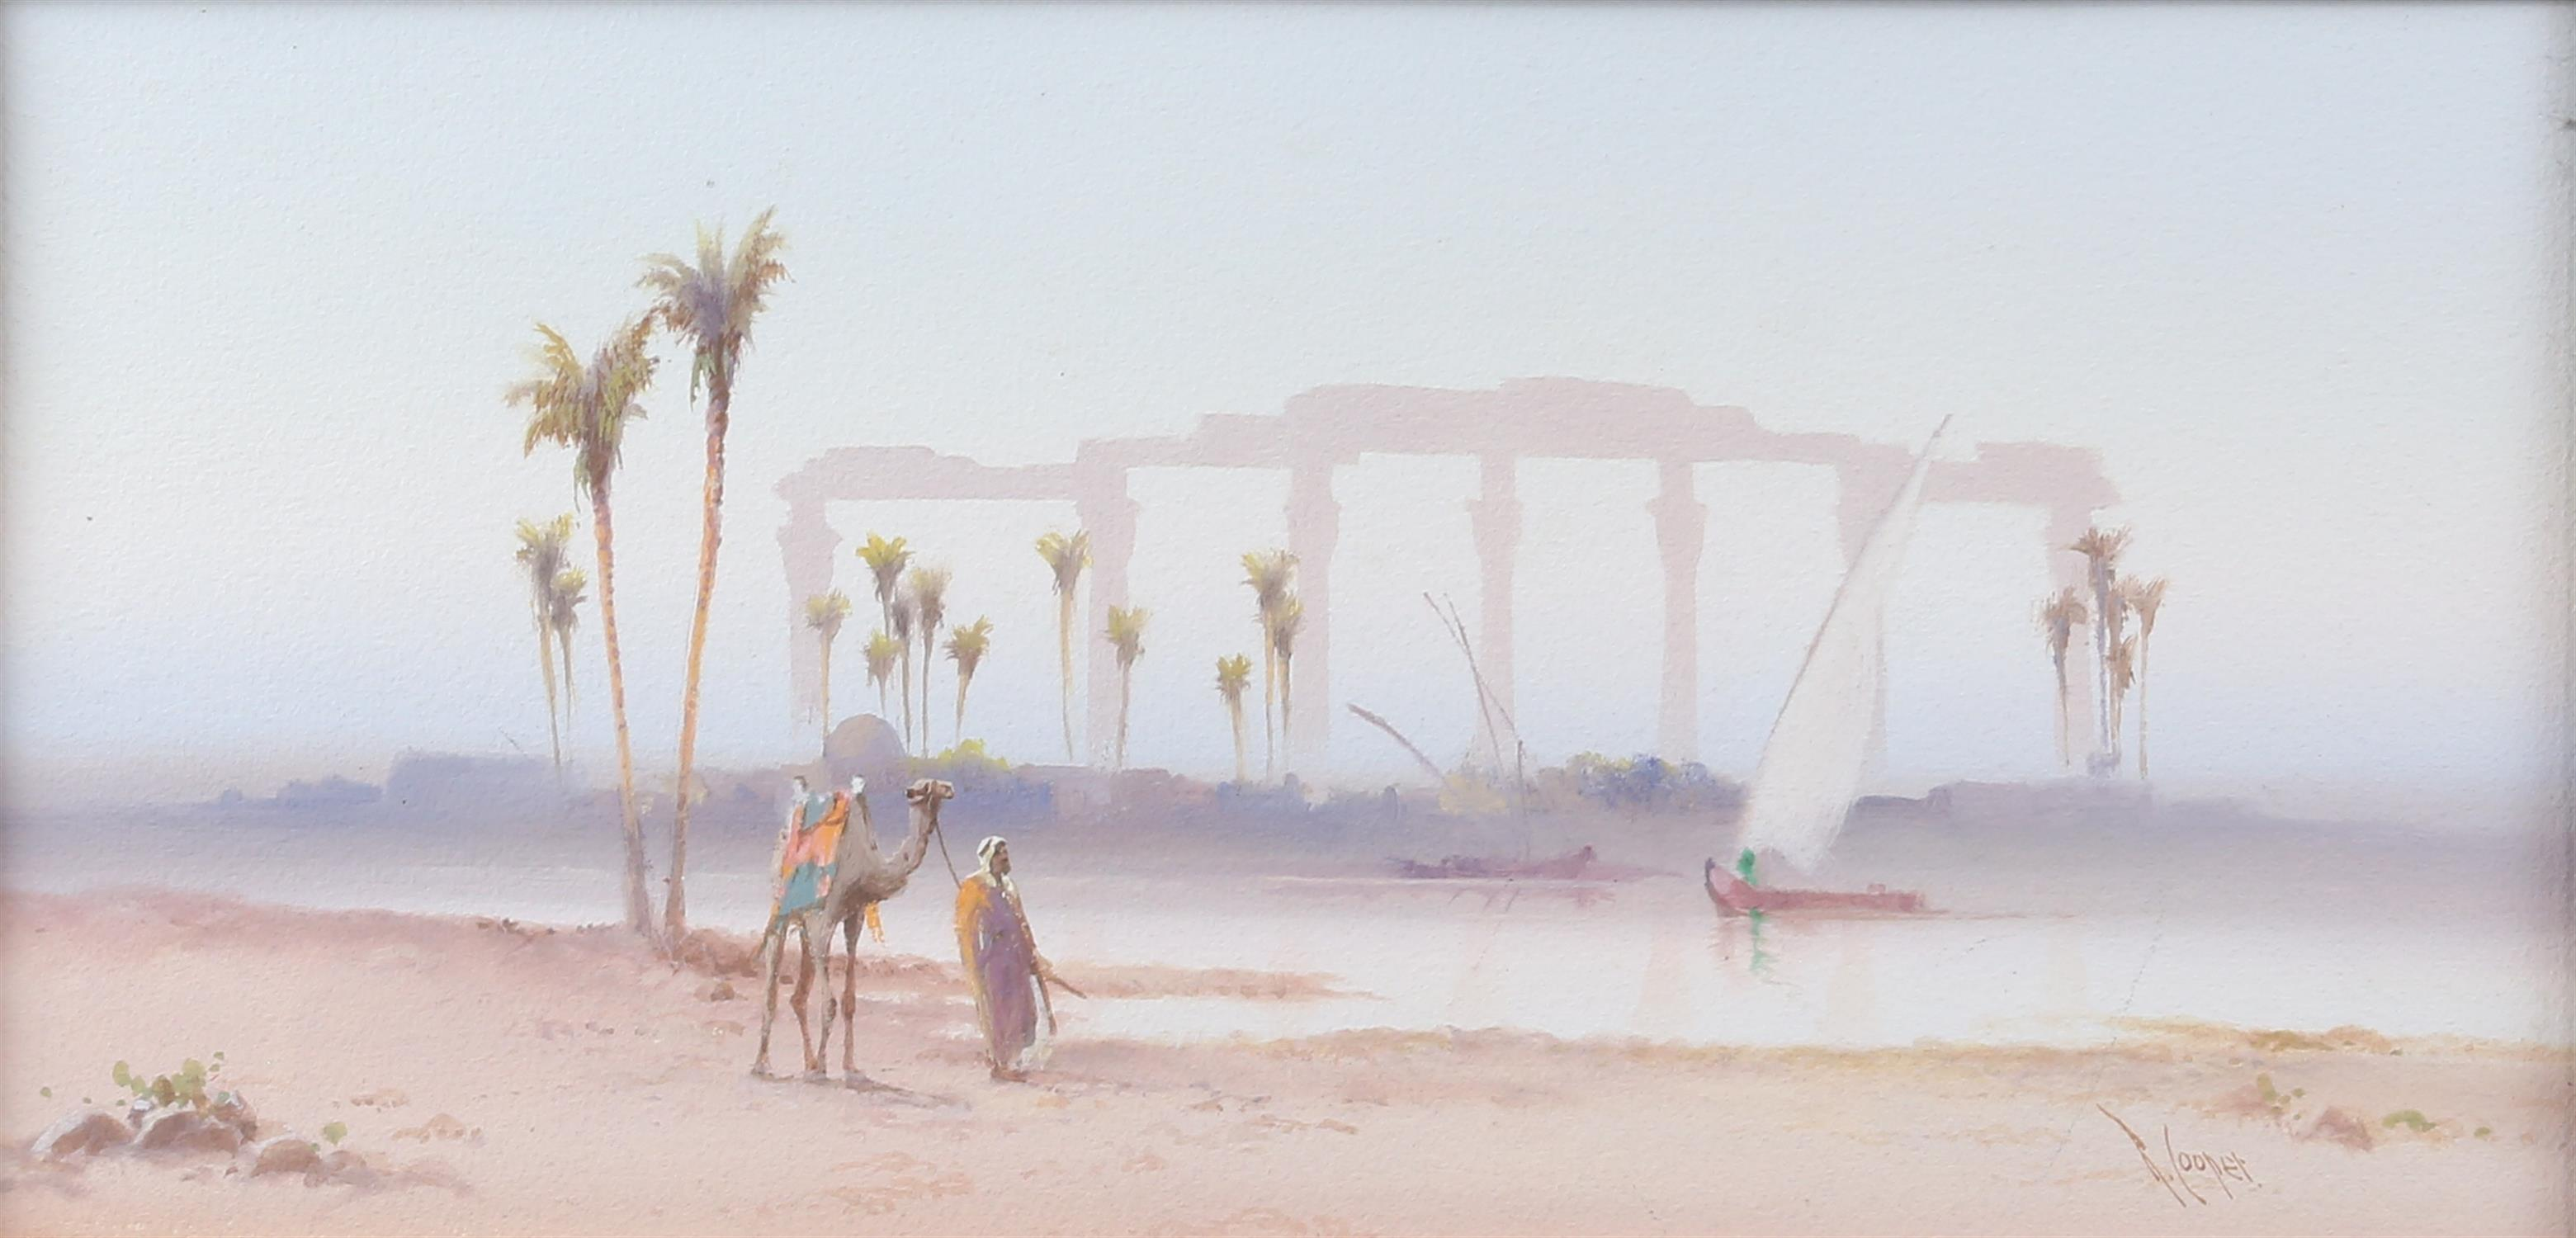 REVISED ESTIMATE Reginald Cooper, (early 20th century), Egyptian scene with a man with a camel and